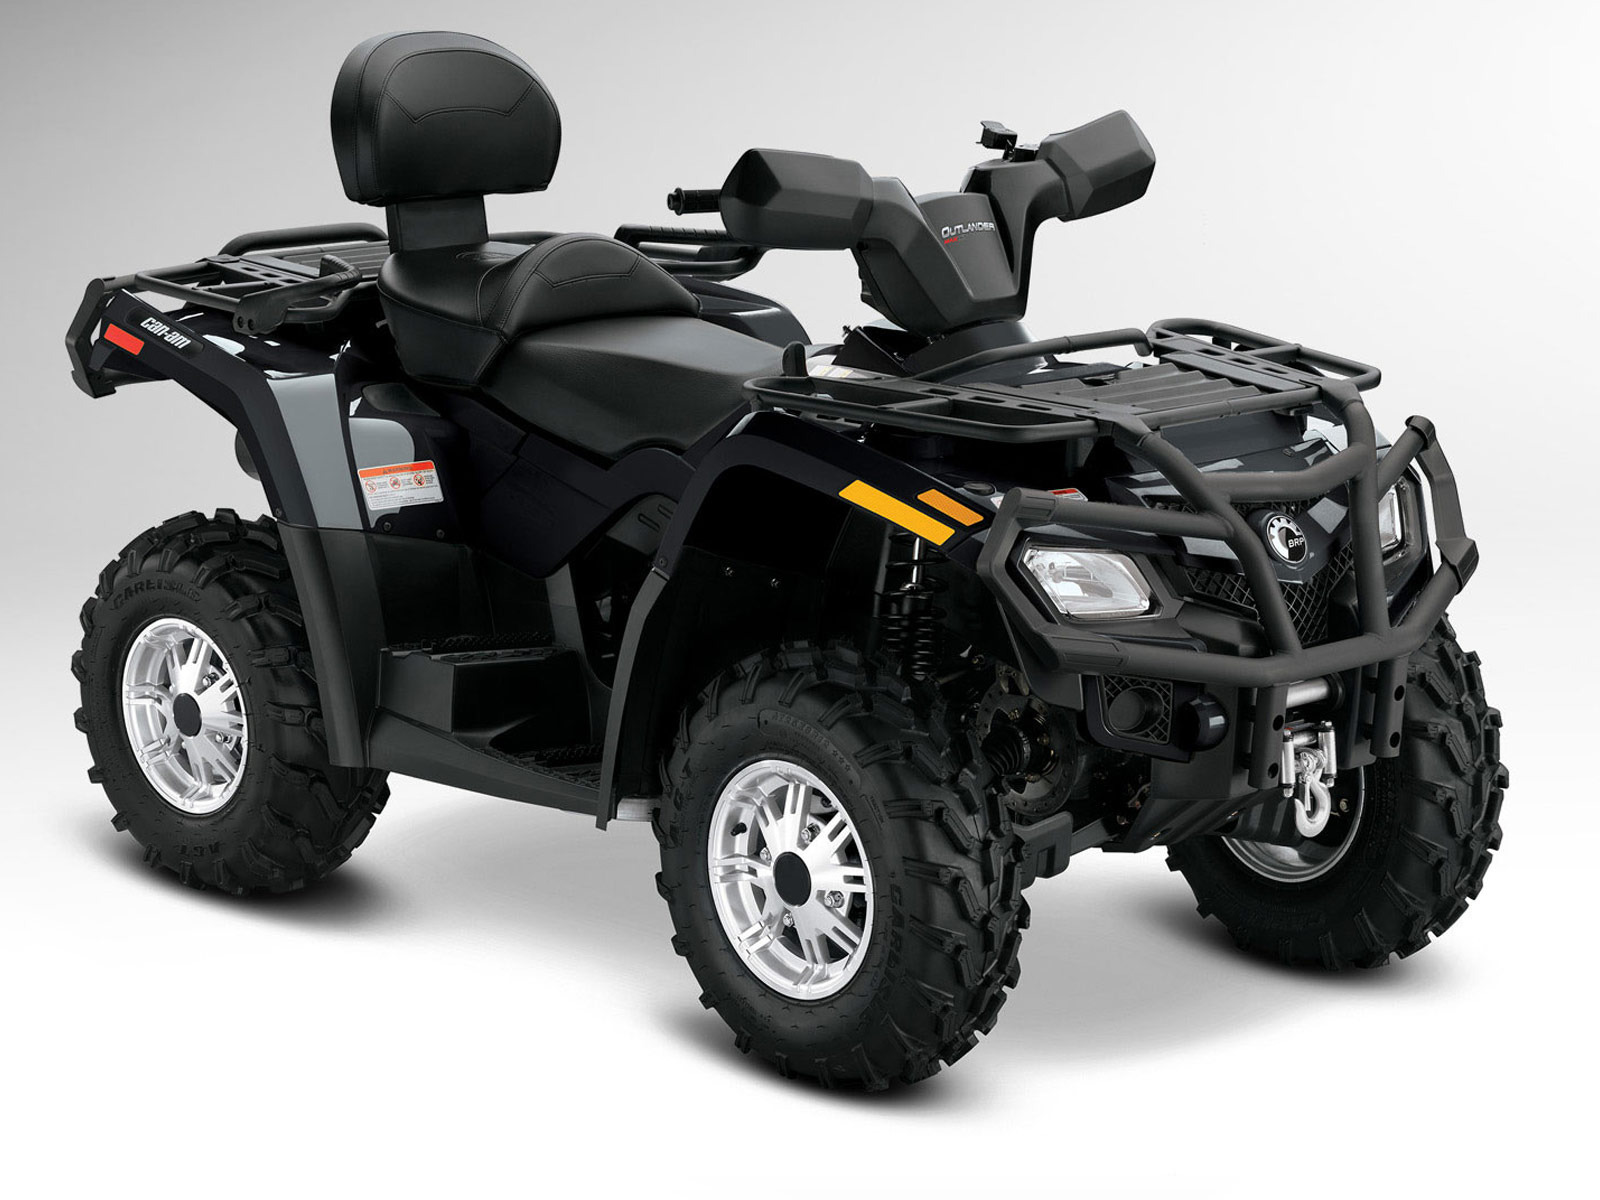 2012 Can-Am Outlander MAX 400 XT Review The Outlander MAX 400 delivers  two-up capability with the ...